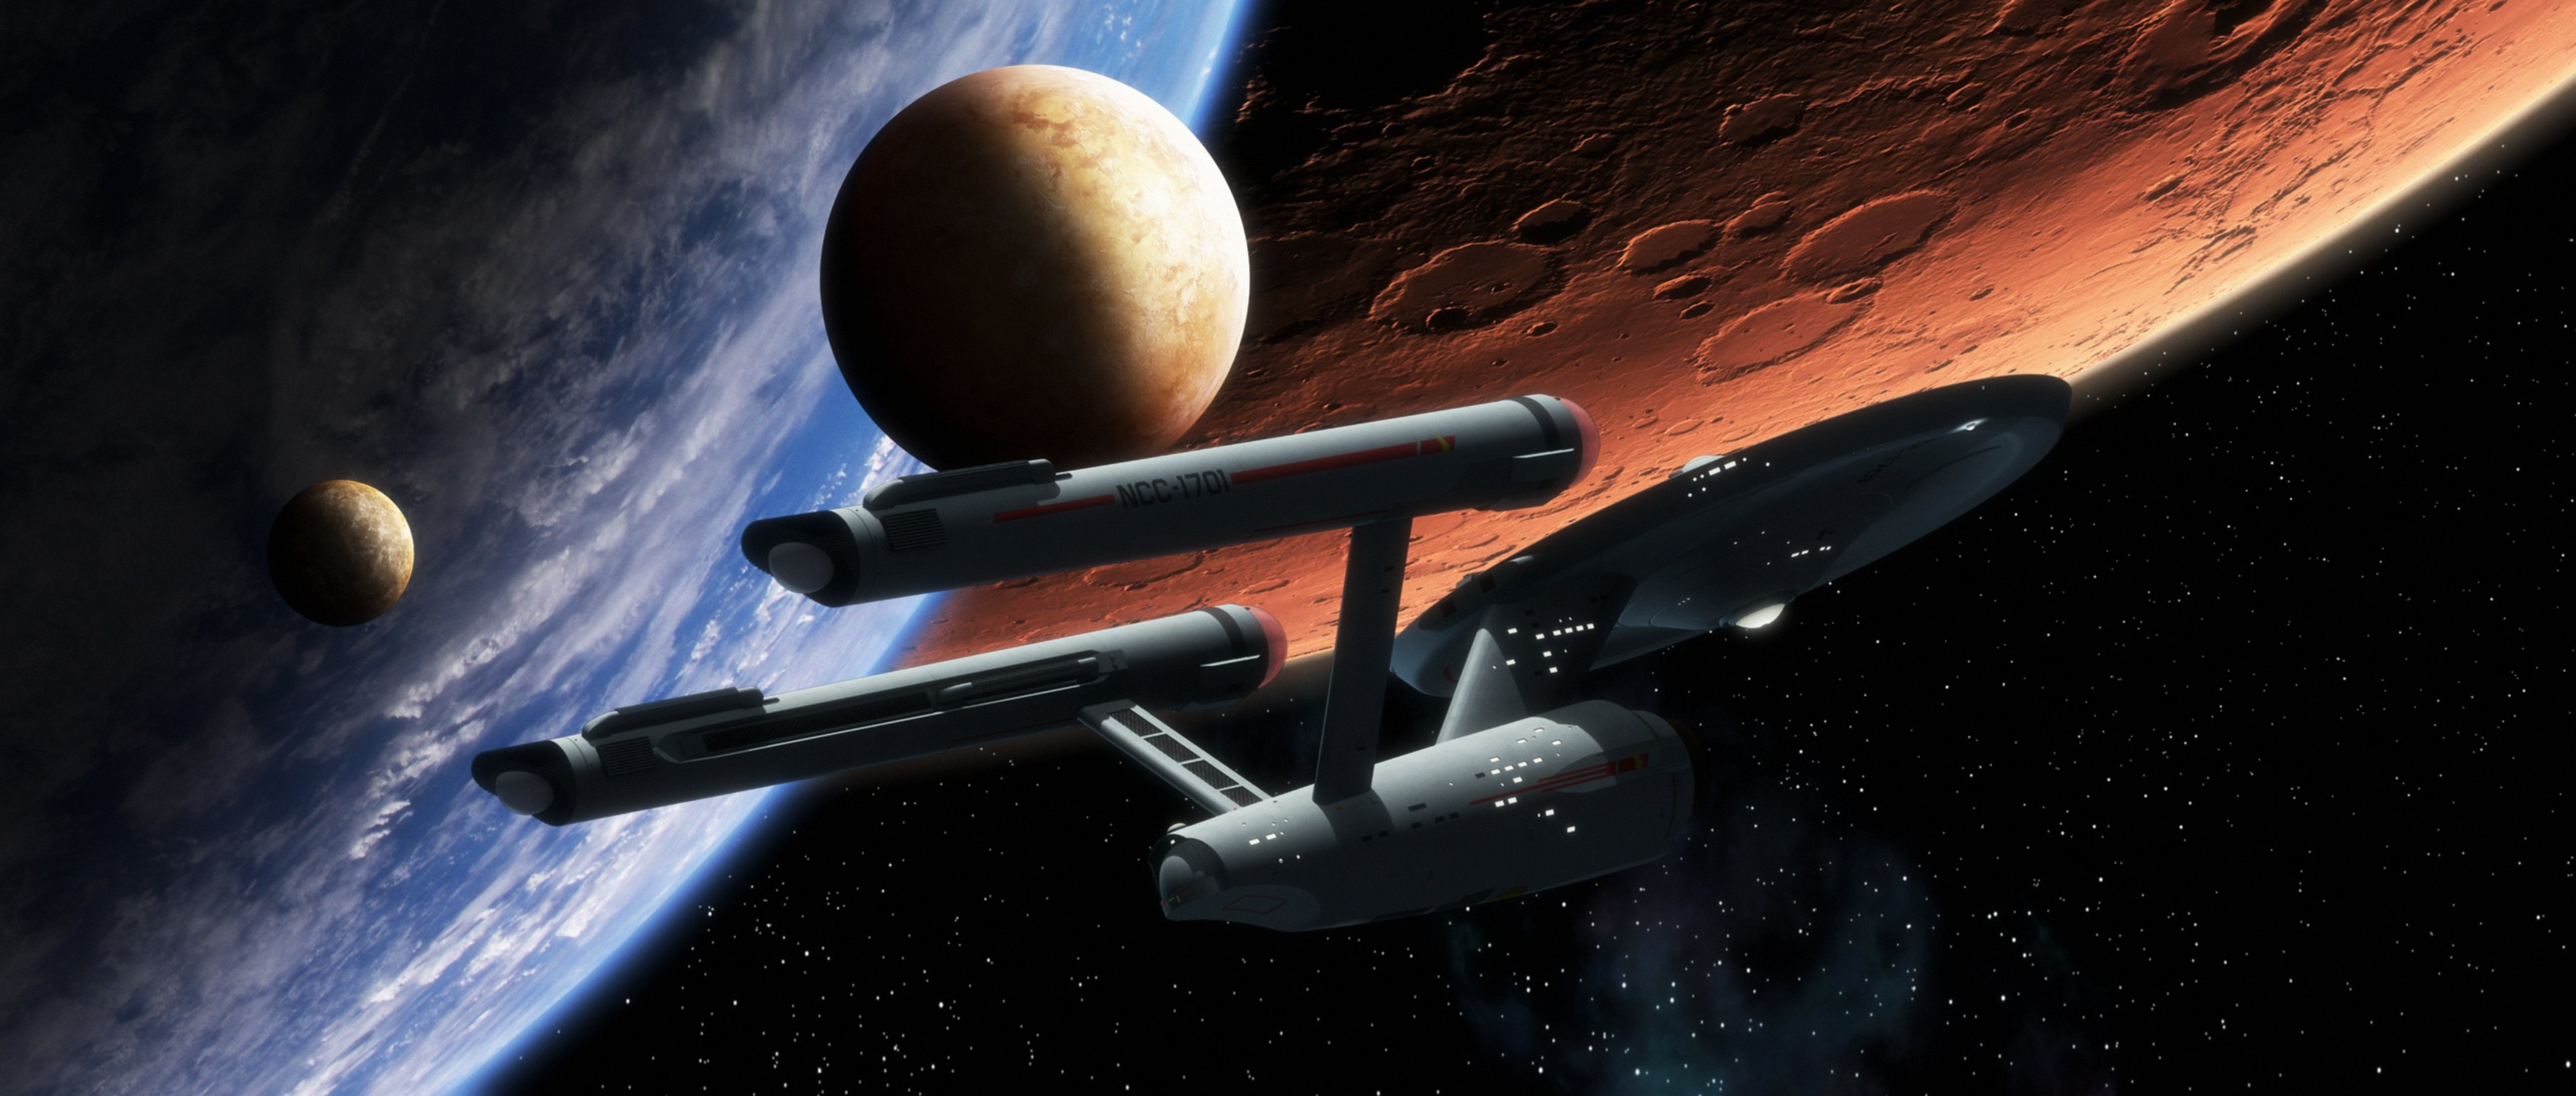 These are the voyages of the Starship Enterprise by thefirstfleet